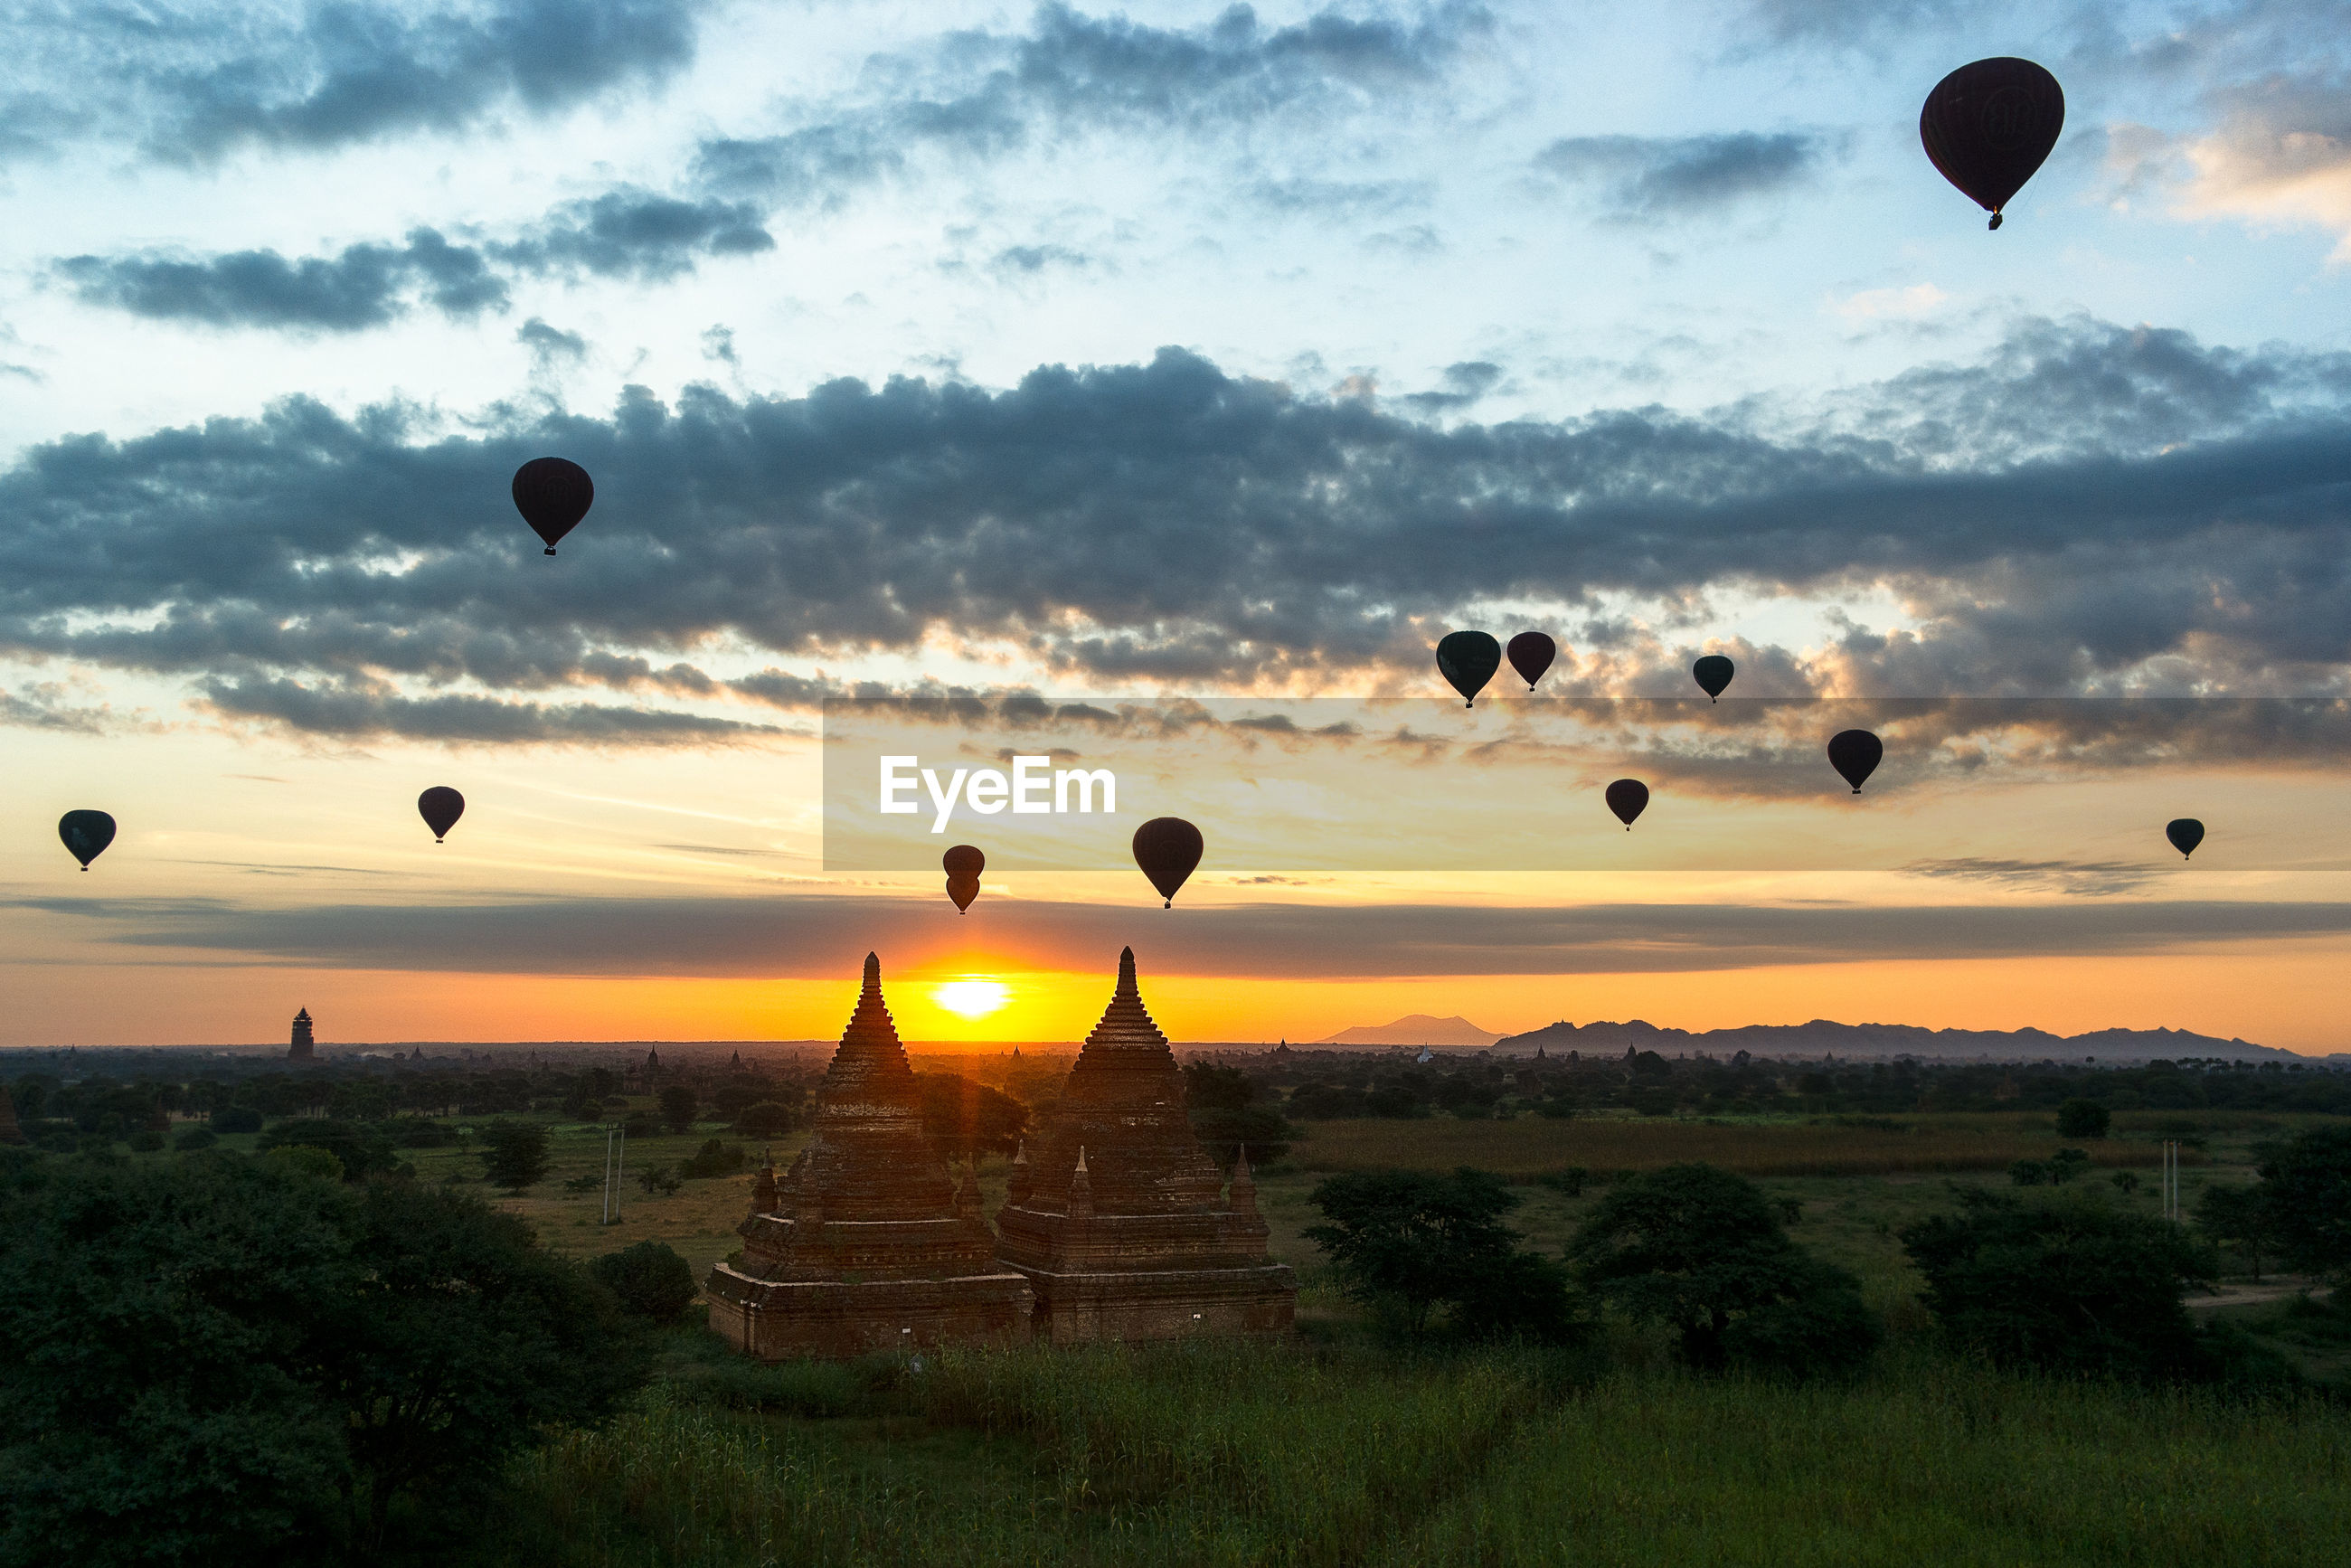 Hot air balloons flying over temples against sky during sunrise